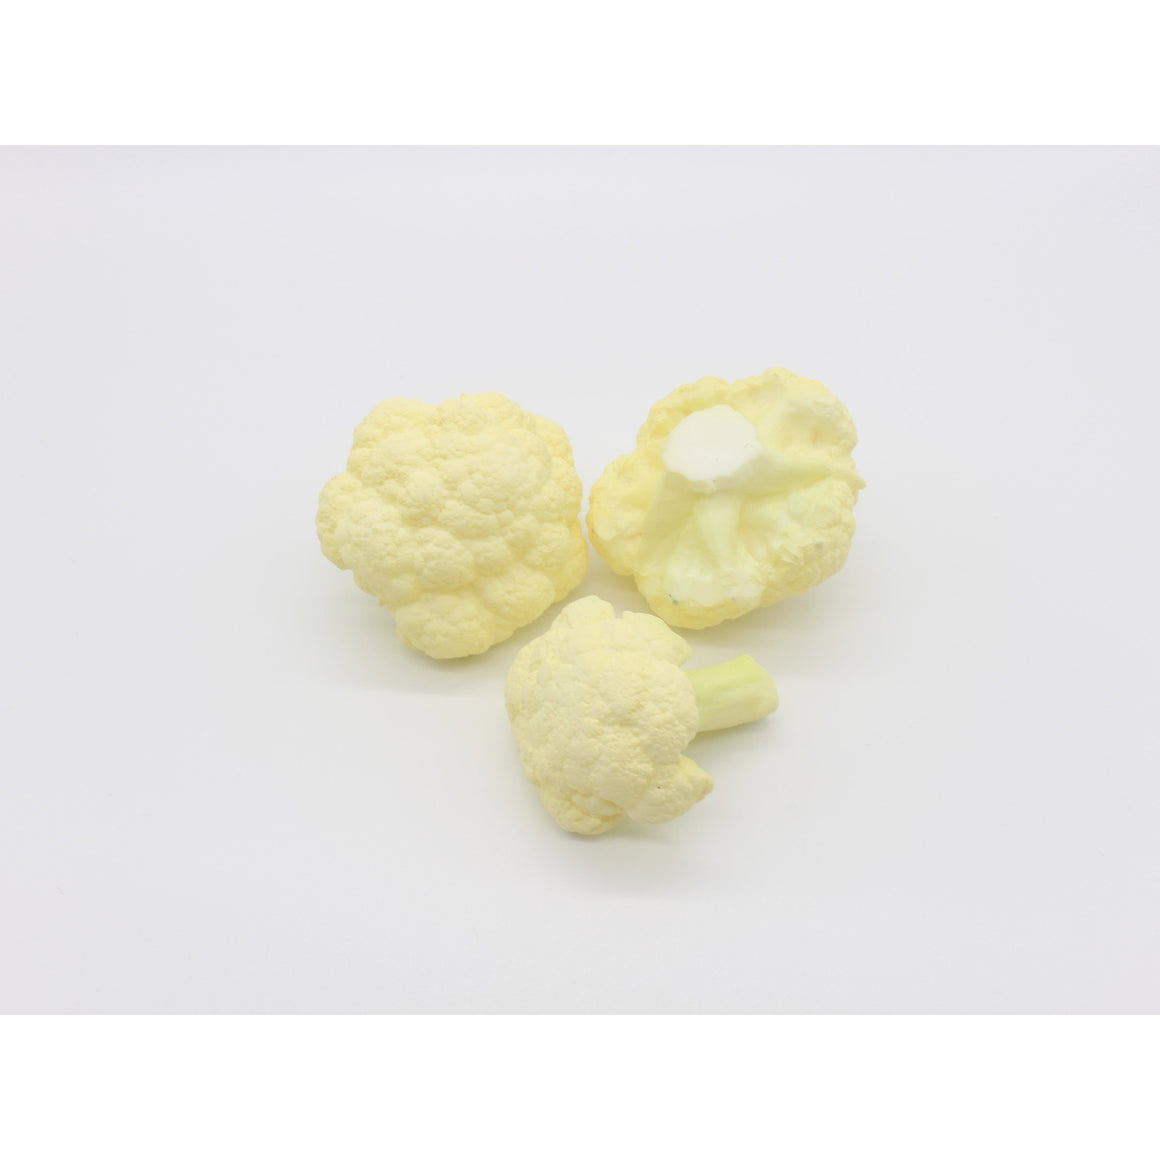 Cauliflower Florets (Set of 3)